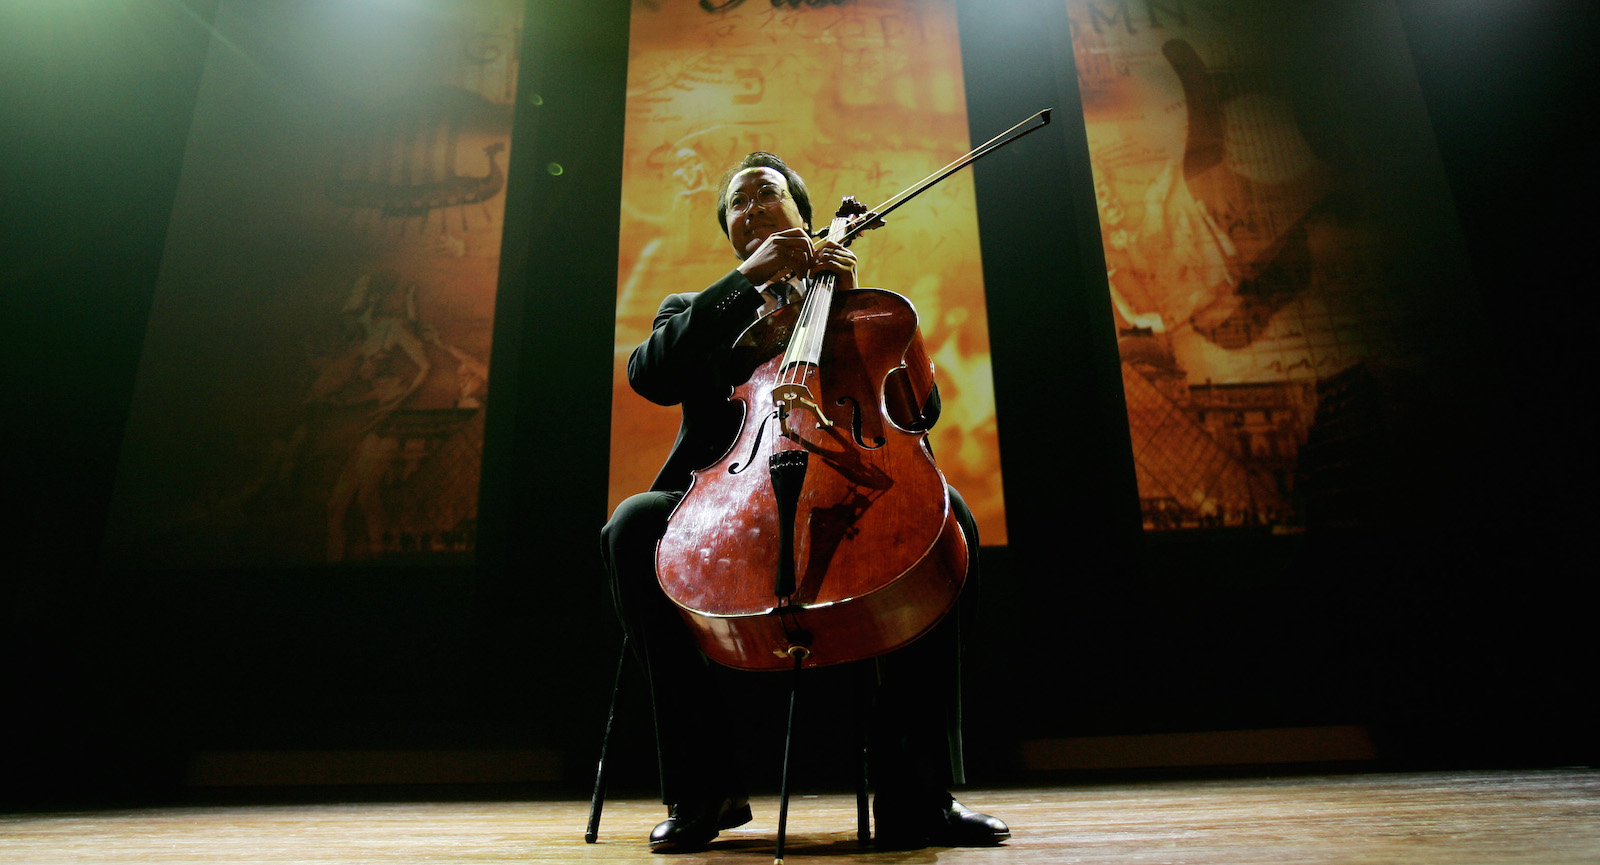 "Cellist Yo-Yo Ma preforms during the Dan David Prize award ceremony in Tel Aviv's University, Israel Sunday, May 21 2006.Word renowned cellist Yo-Yo Ma received a prestigious and valuable prize on Sunday recognizing his ""Silk Road Project"" for its contribution to international cultural understanding. The Dan David Prize Ma won is worth $1 million. In his acceptance speech, he said he would share it with the musicians, board members and staff of the project. (AP Photo/Ariel Schalit)"